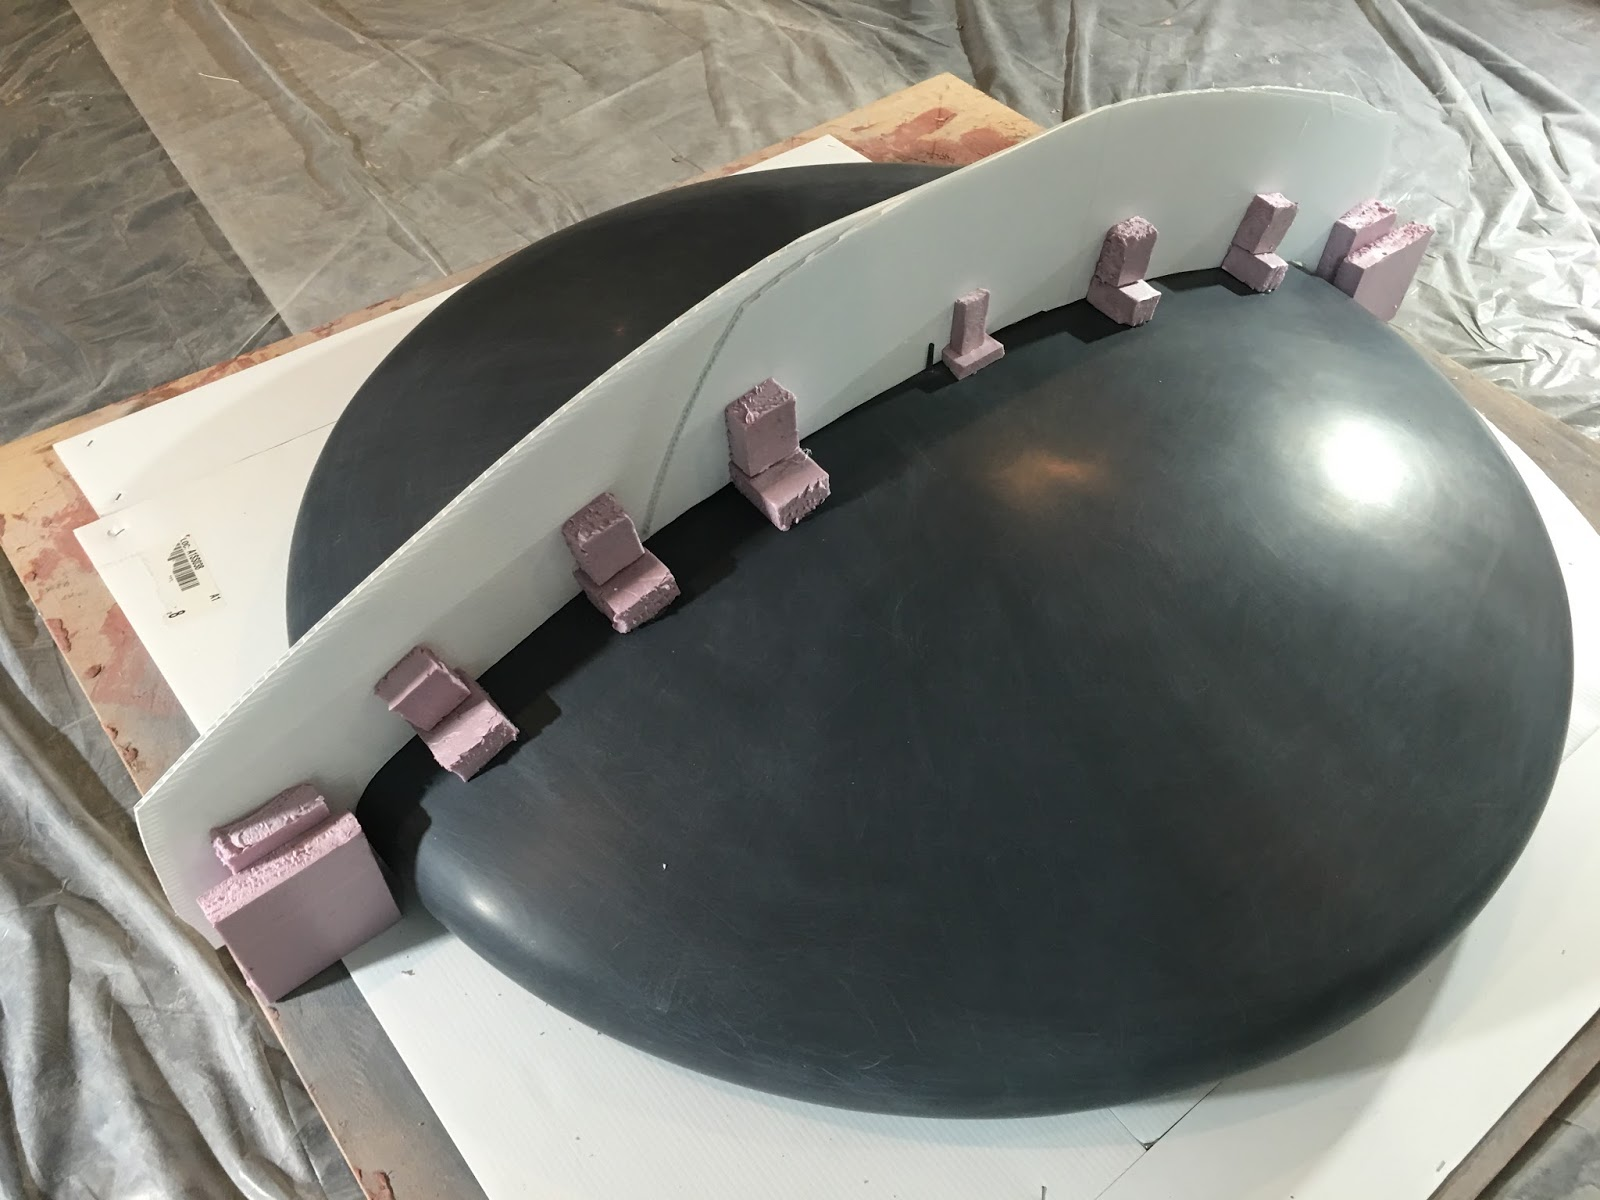 First half of mold to be formed on side opposite from the pink styrofoam